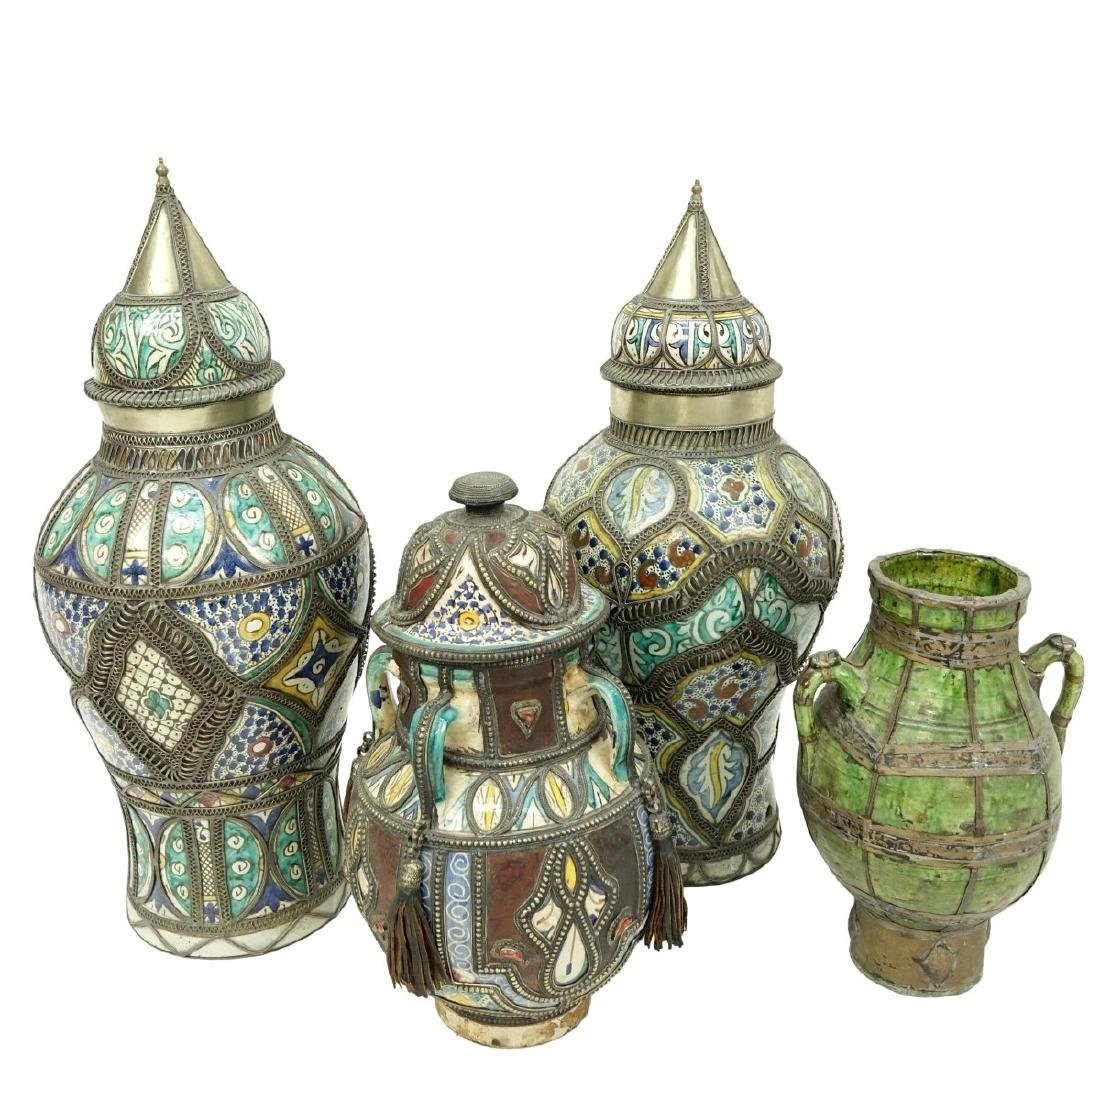 Grouping of Four (4) Moroccan Pottery Jars